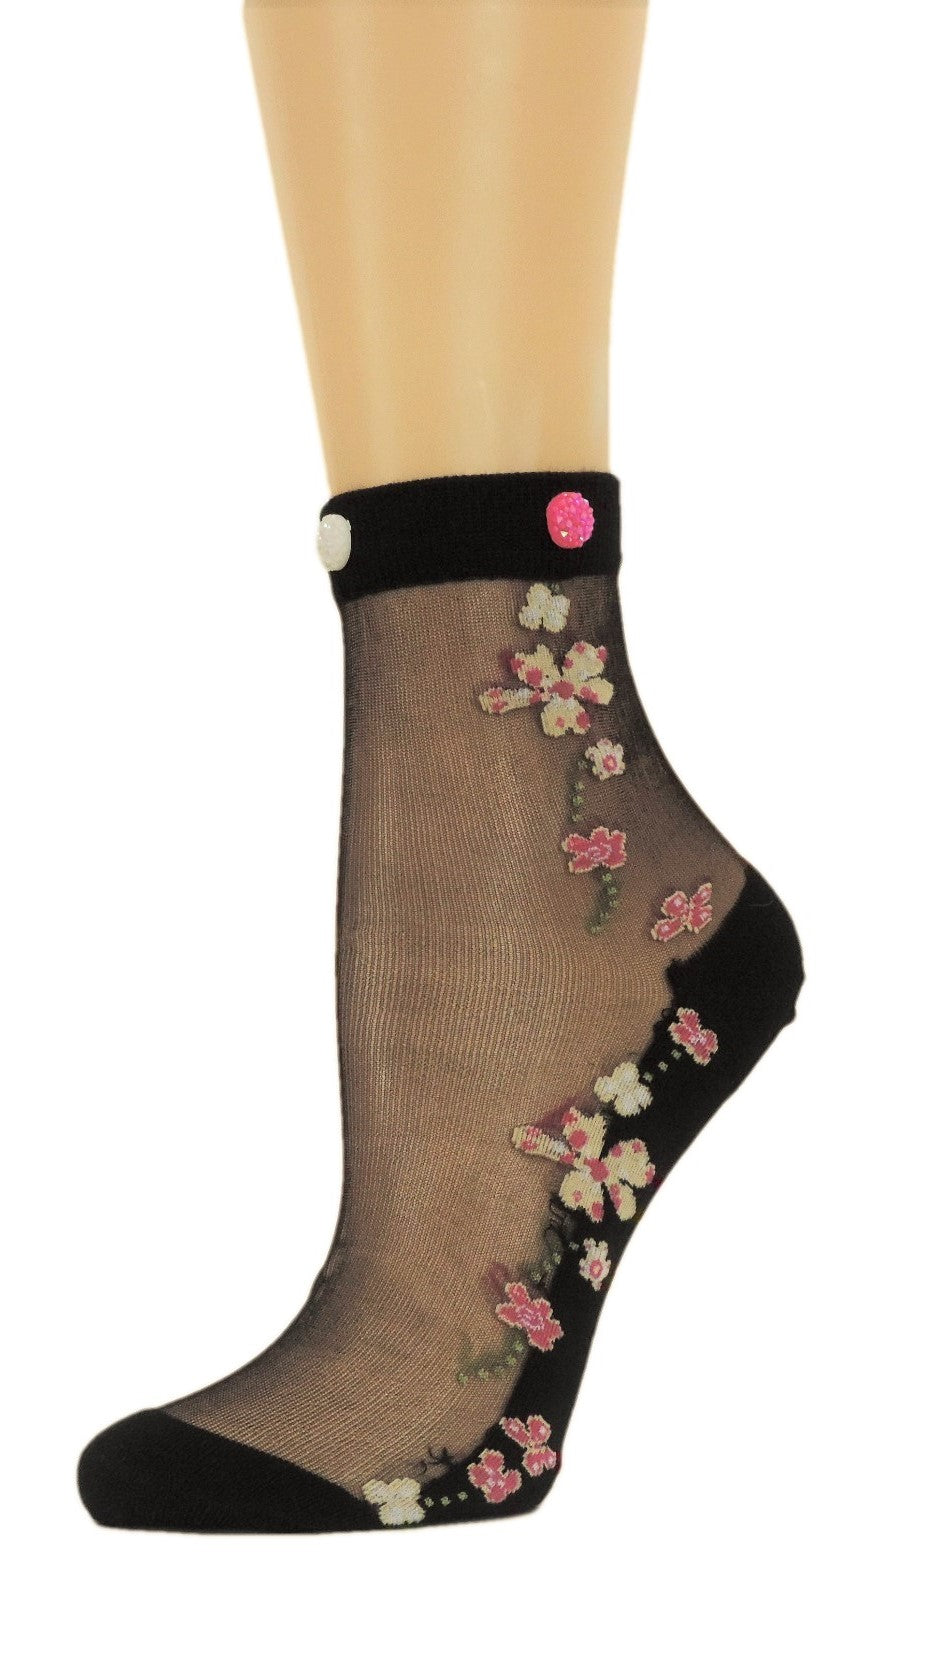 Summer Flowers Custom Sheer Socks with beads